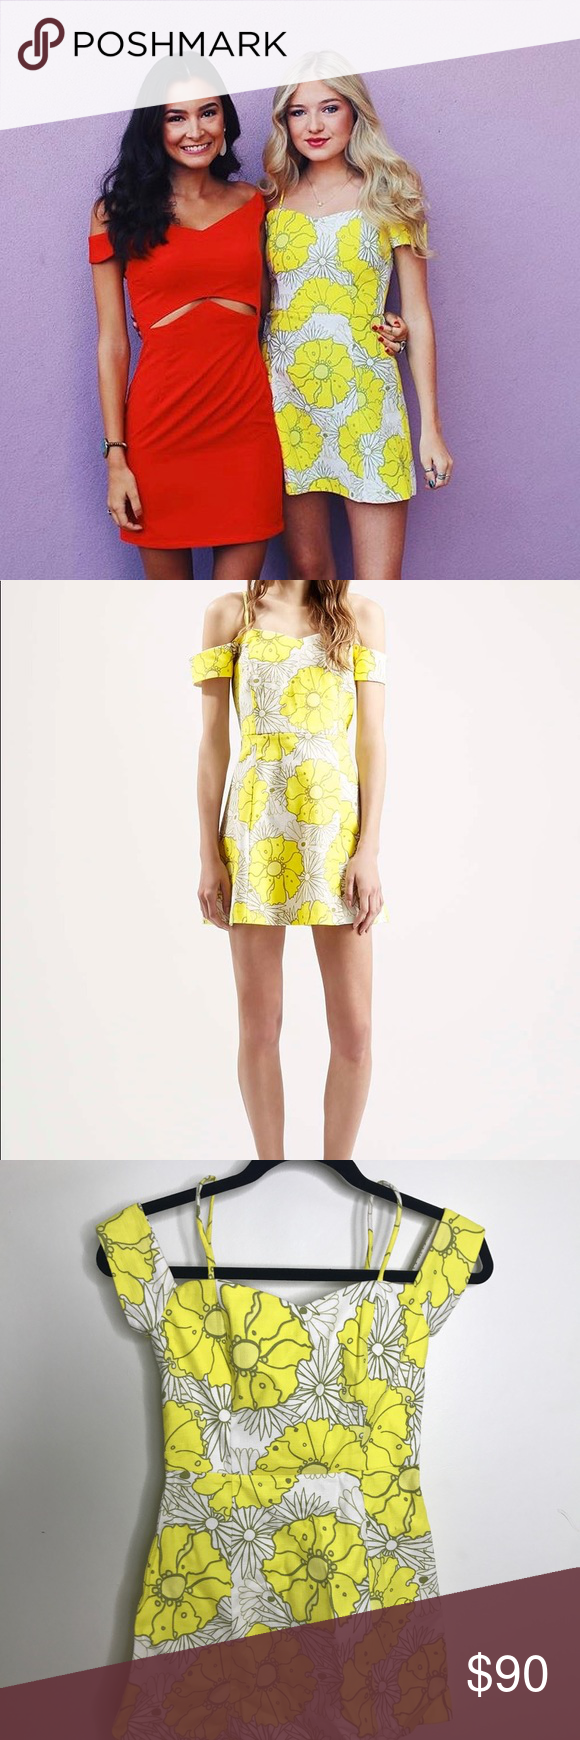 Yellow Flower Dress From Topshop Bright Yellow And White Floral